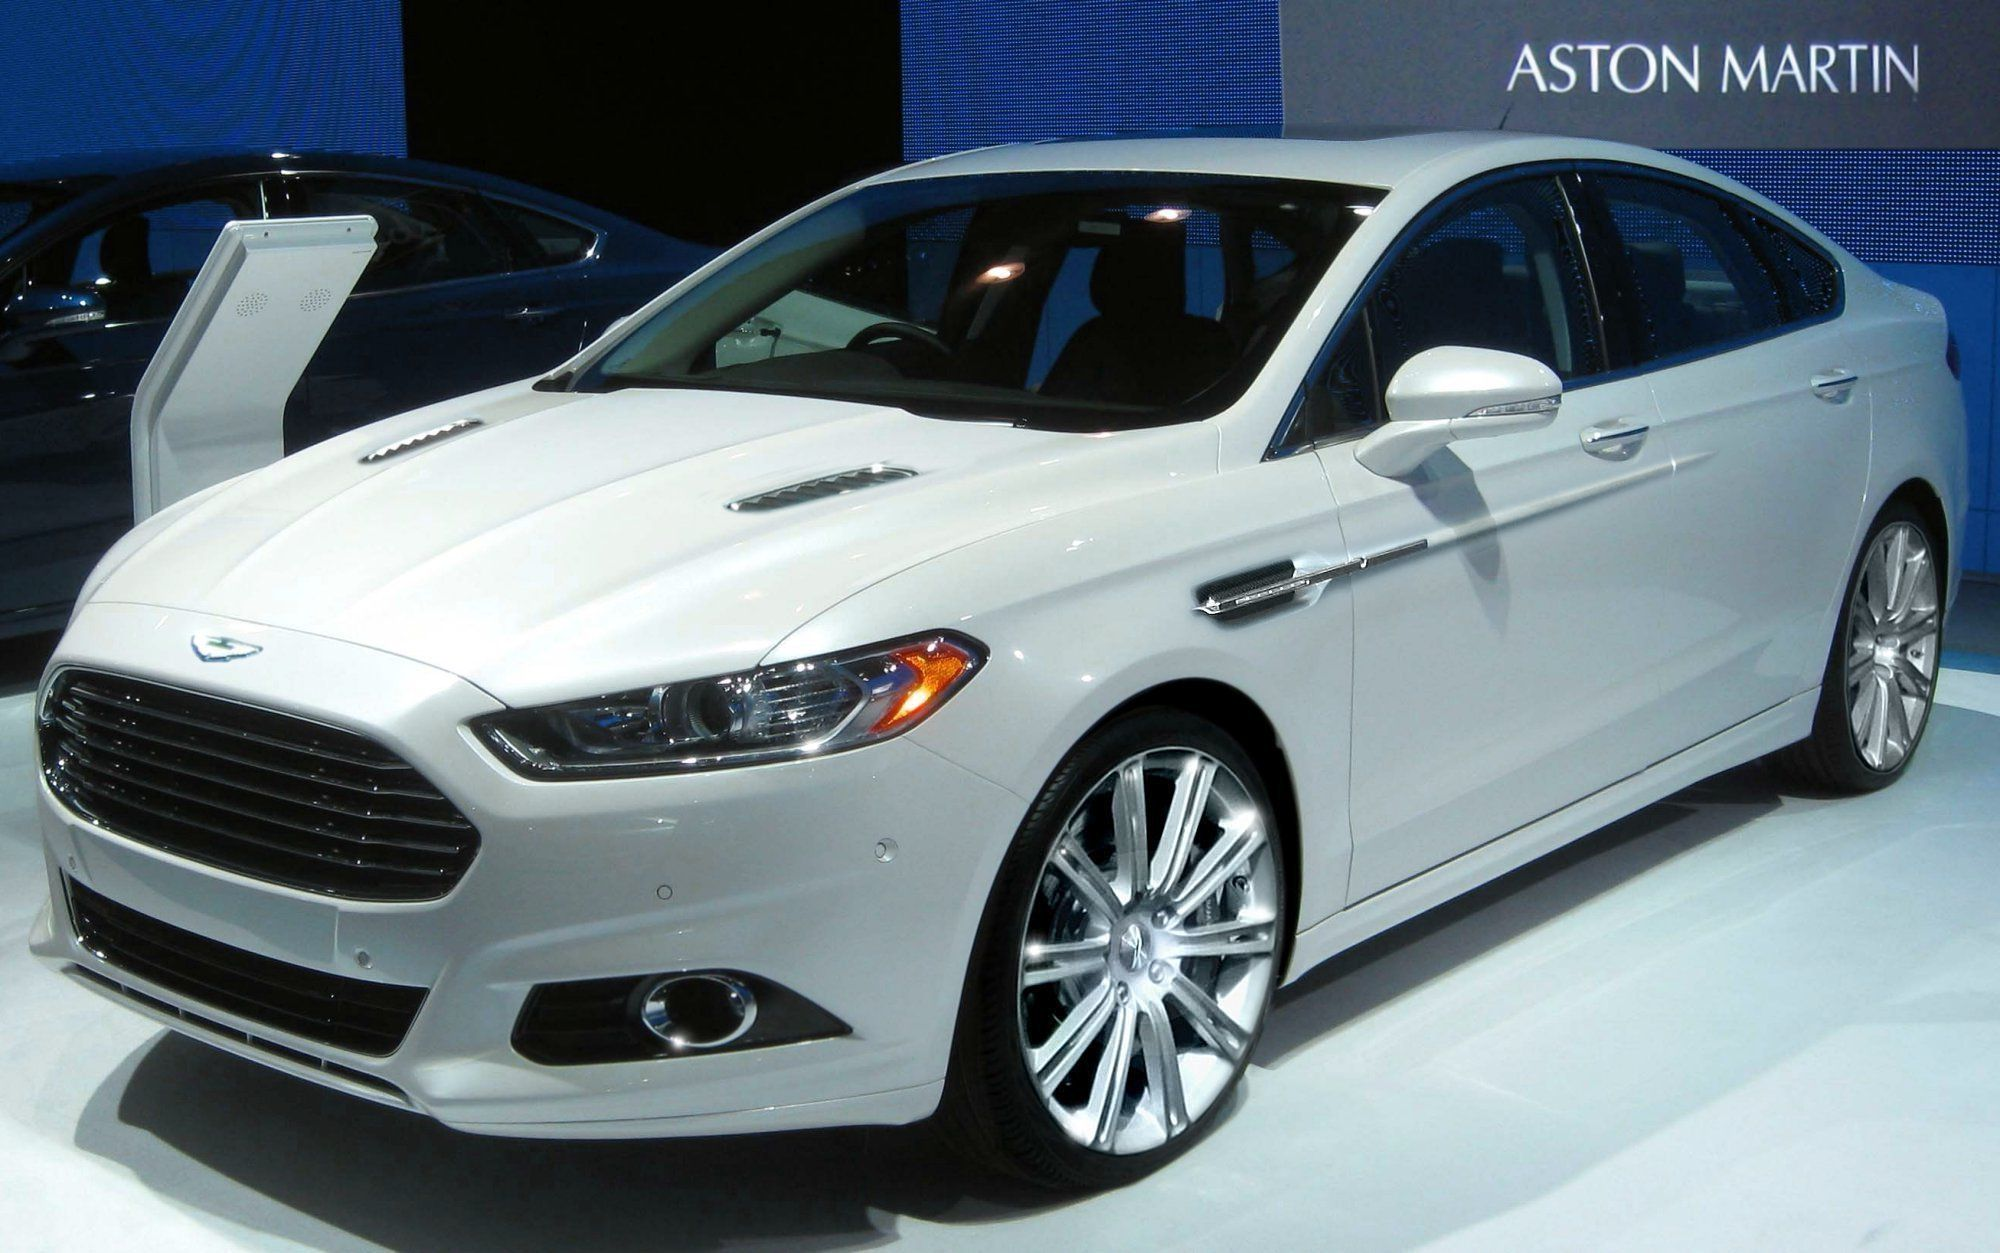 2014 Fusion Aston Martin Edition Gets The 3 5l V6 Ecoboost Engine